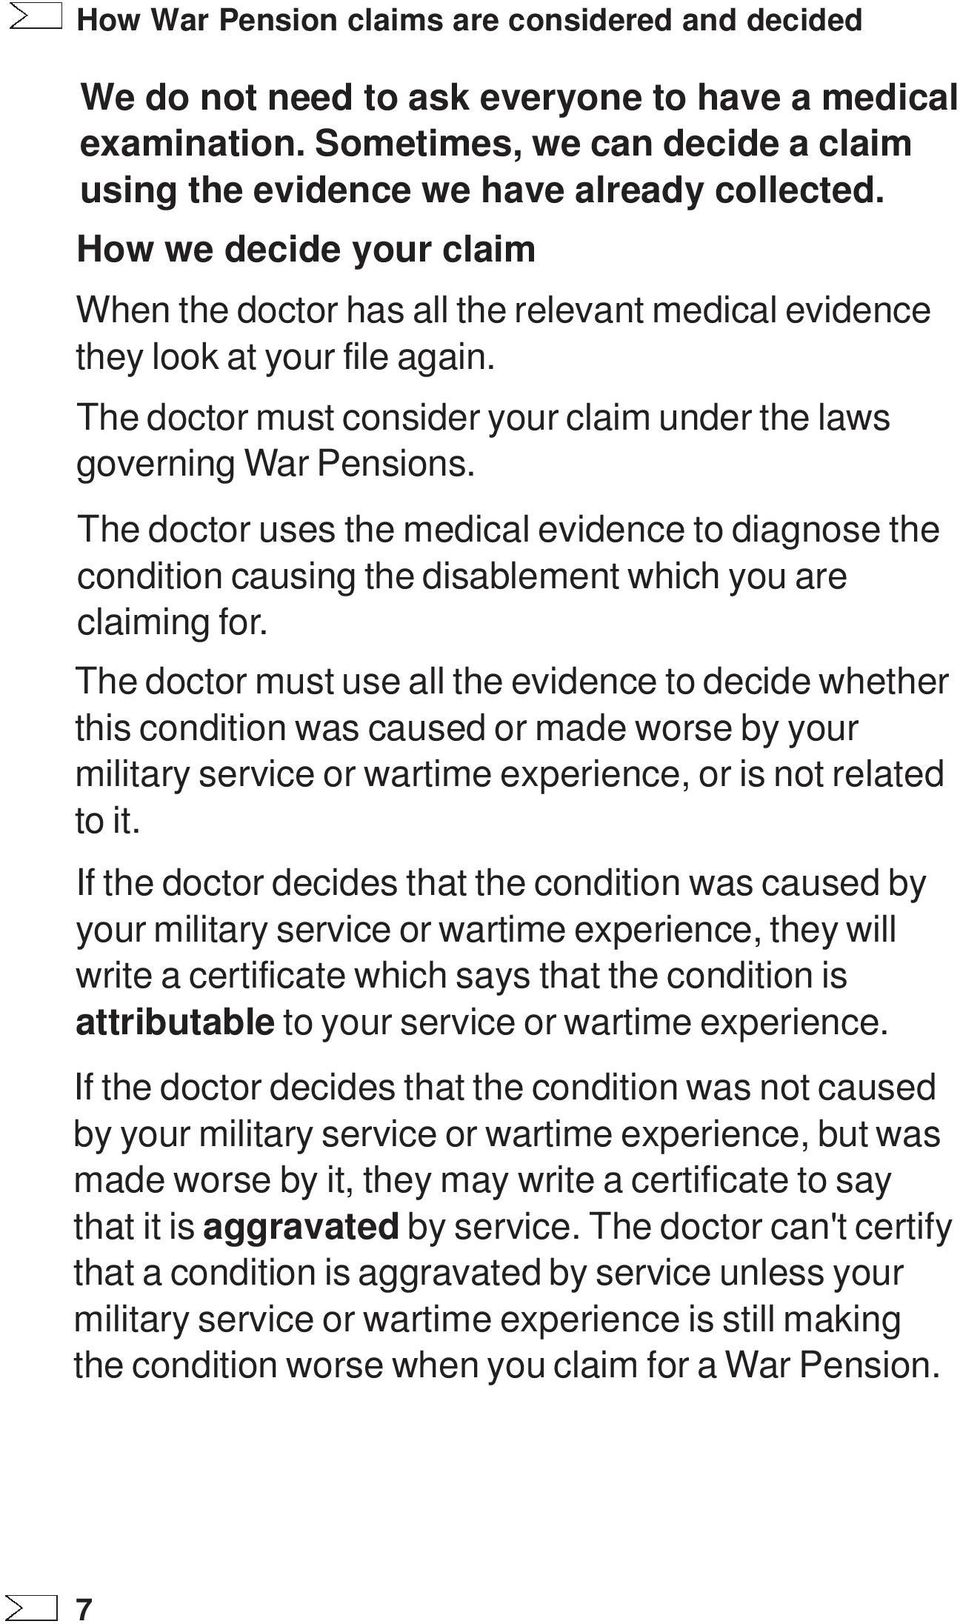 The doctor uses the medical evidence to diagnose the condition causing the disablement which you are claiming for.